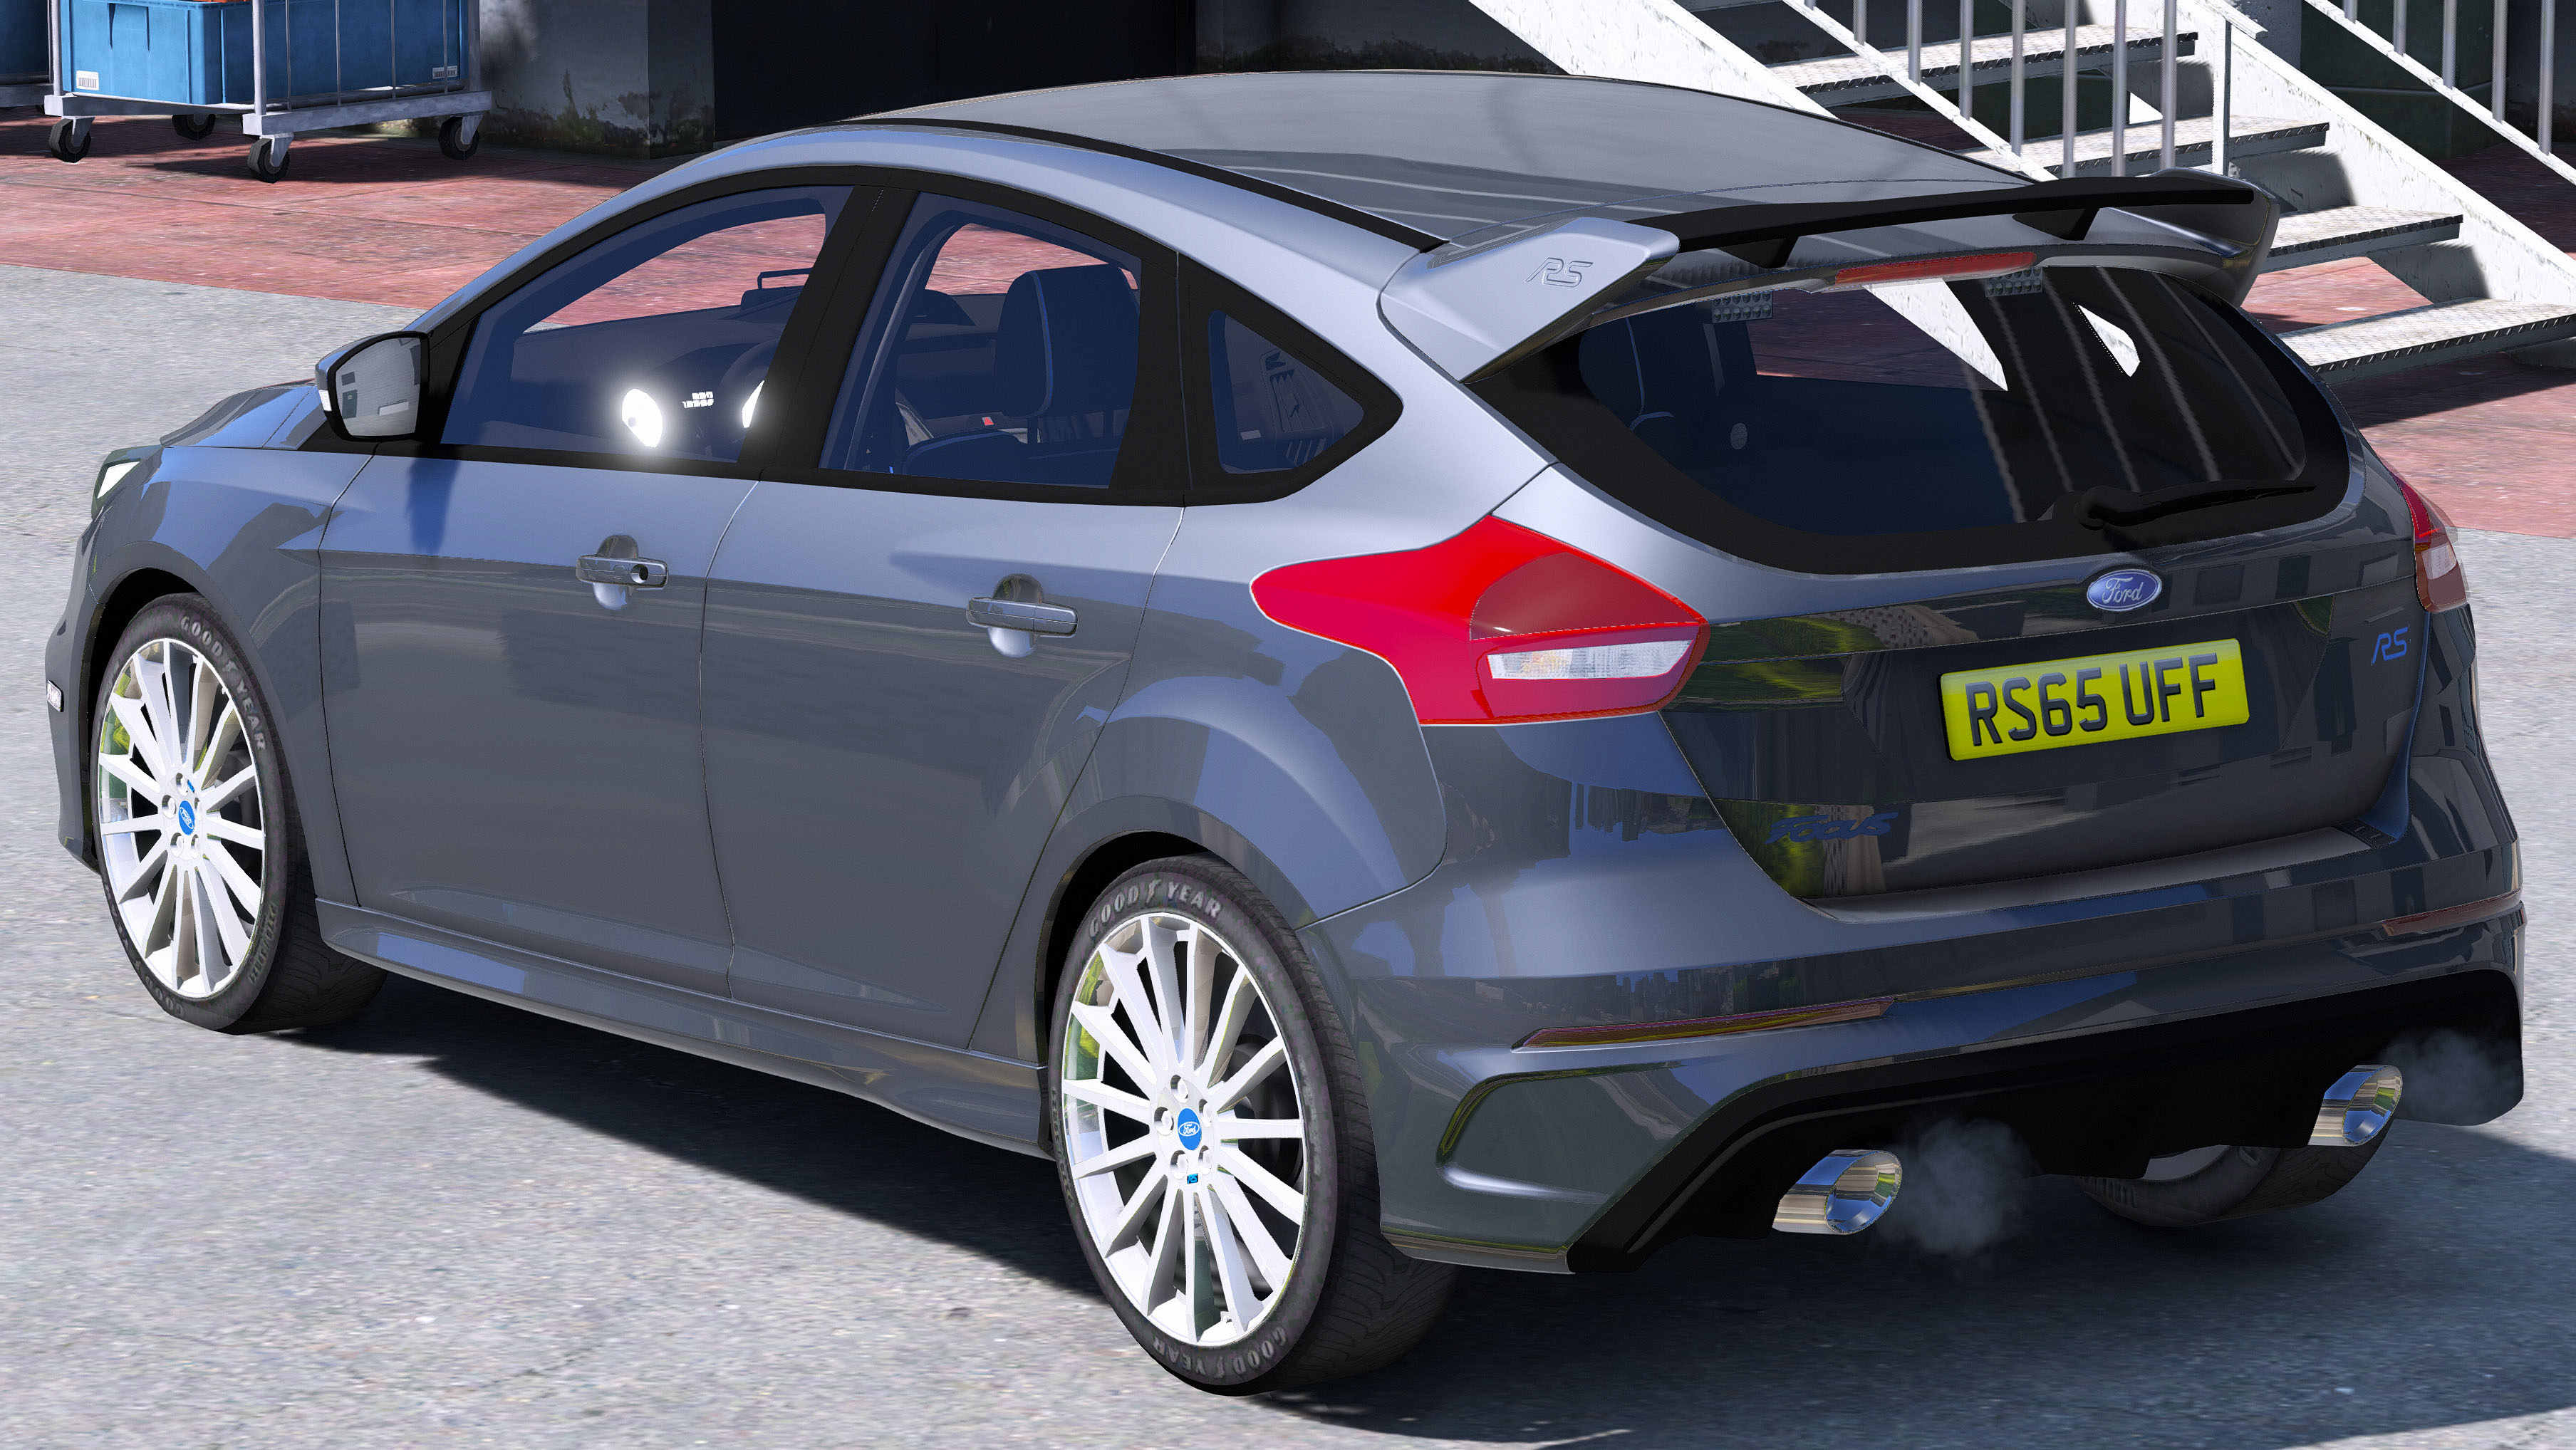 20162017 police ford focus rs markedunmarked gta5 mods 4567e9 gta5 2016 02 08 16 56 19 184 publicscrutiny Image collections